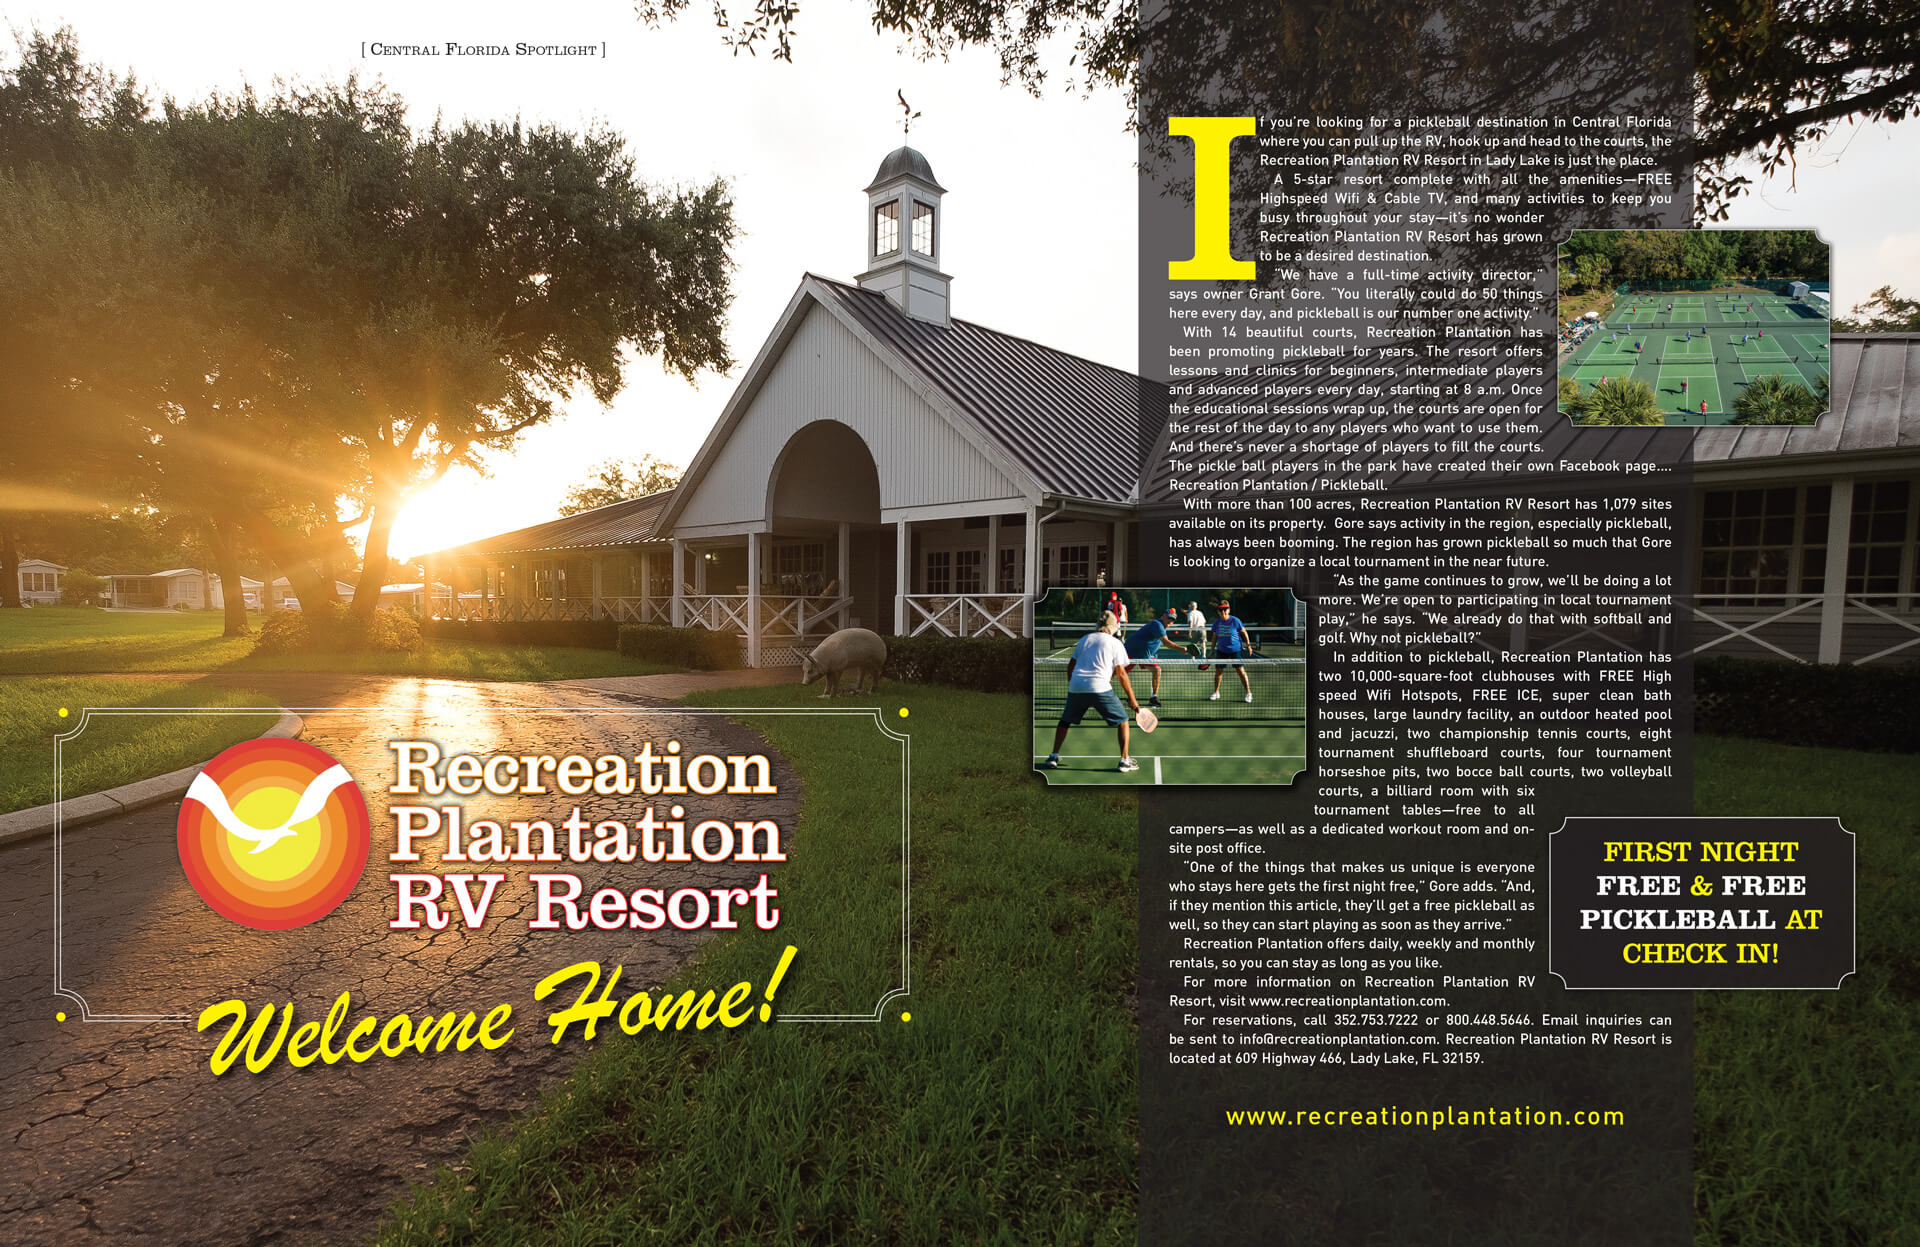 recreation-plantation-pickleball